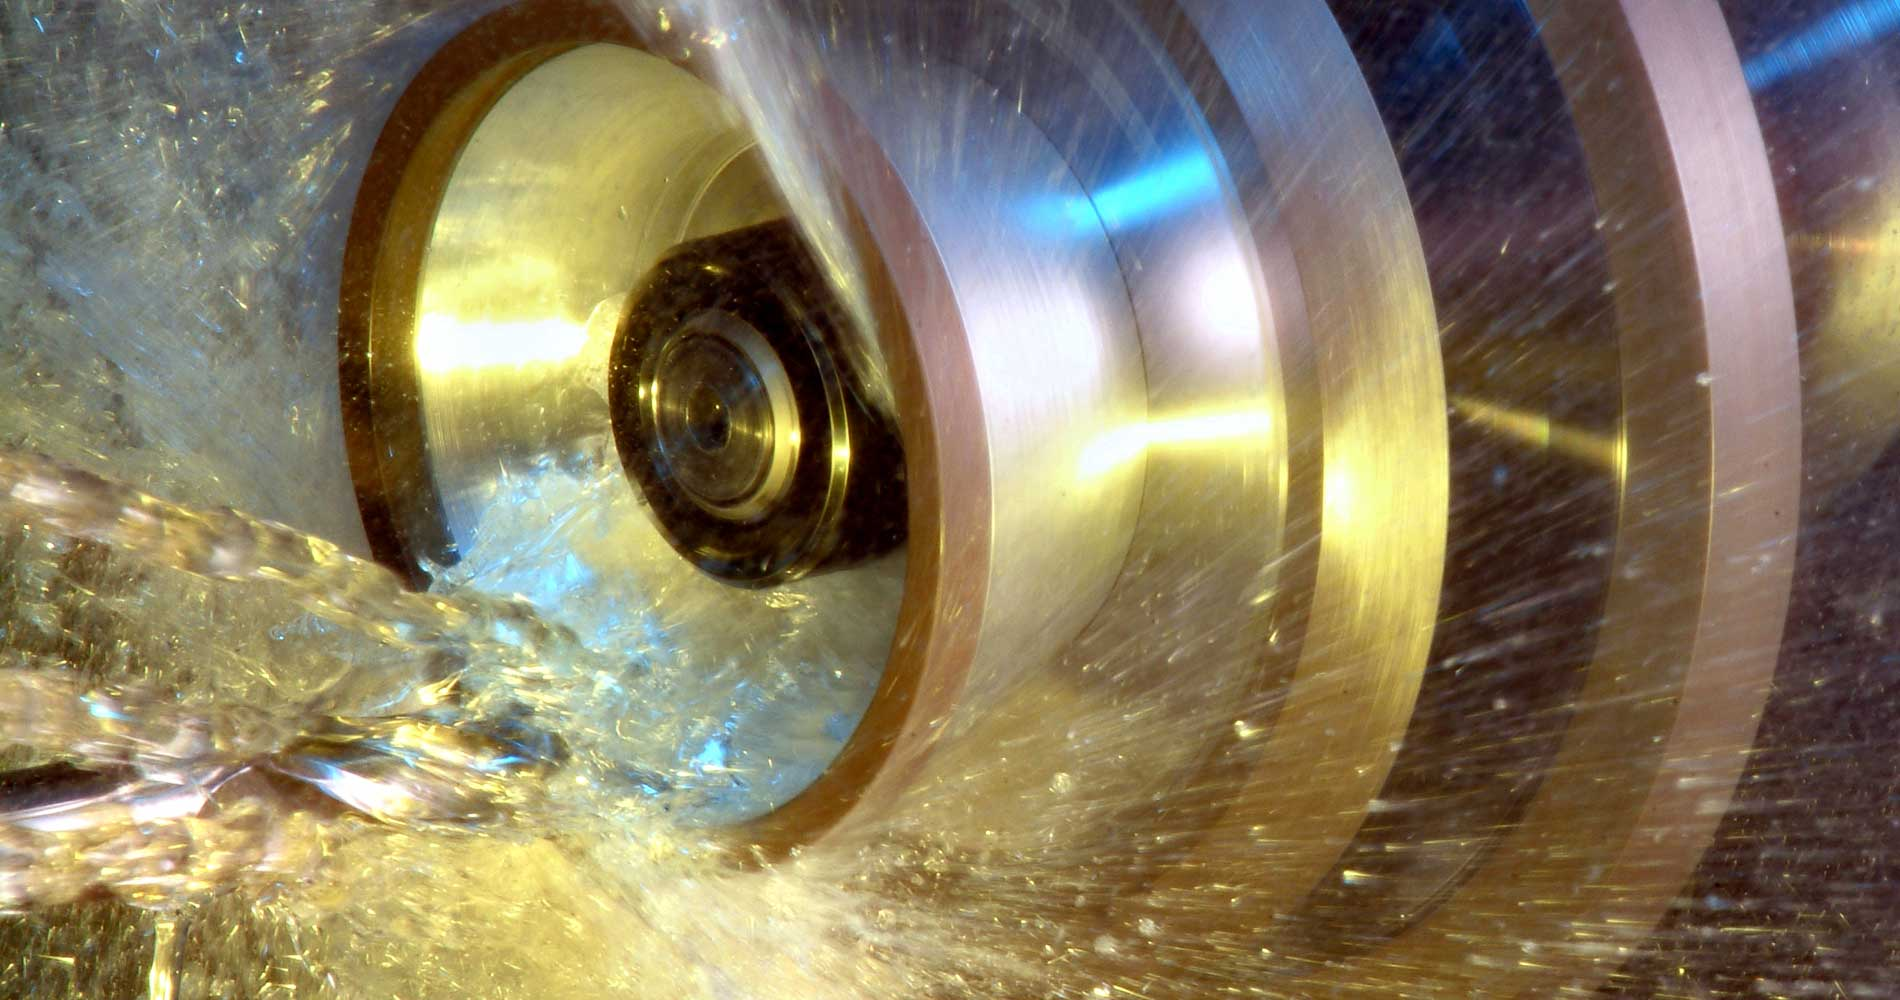 Tool Grinder in action